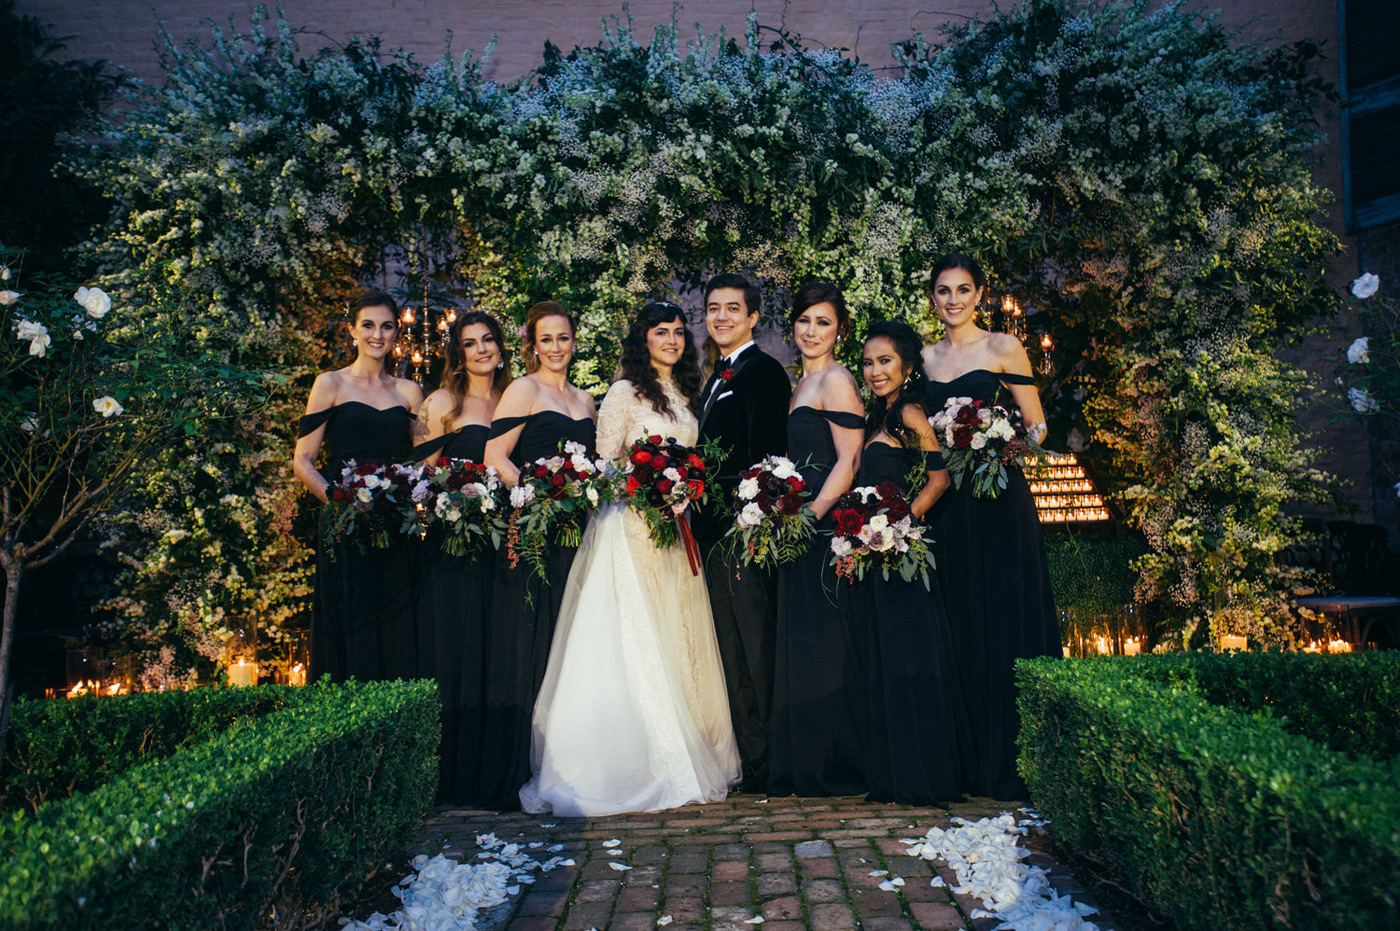 Bride standing next to her bridesmaids in their black bridesmaid dresses with green, red and white bouquets in front of a lush green and white floral backdrop